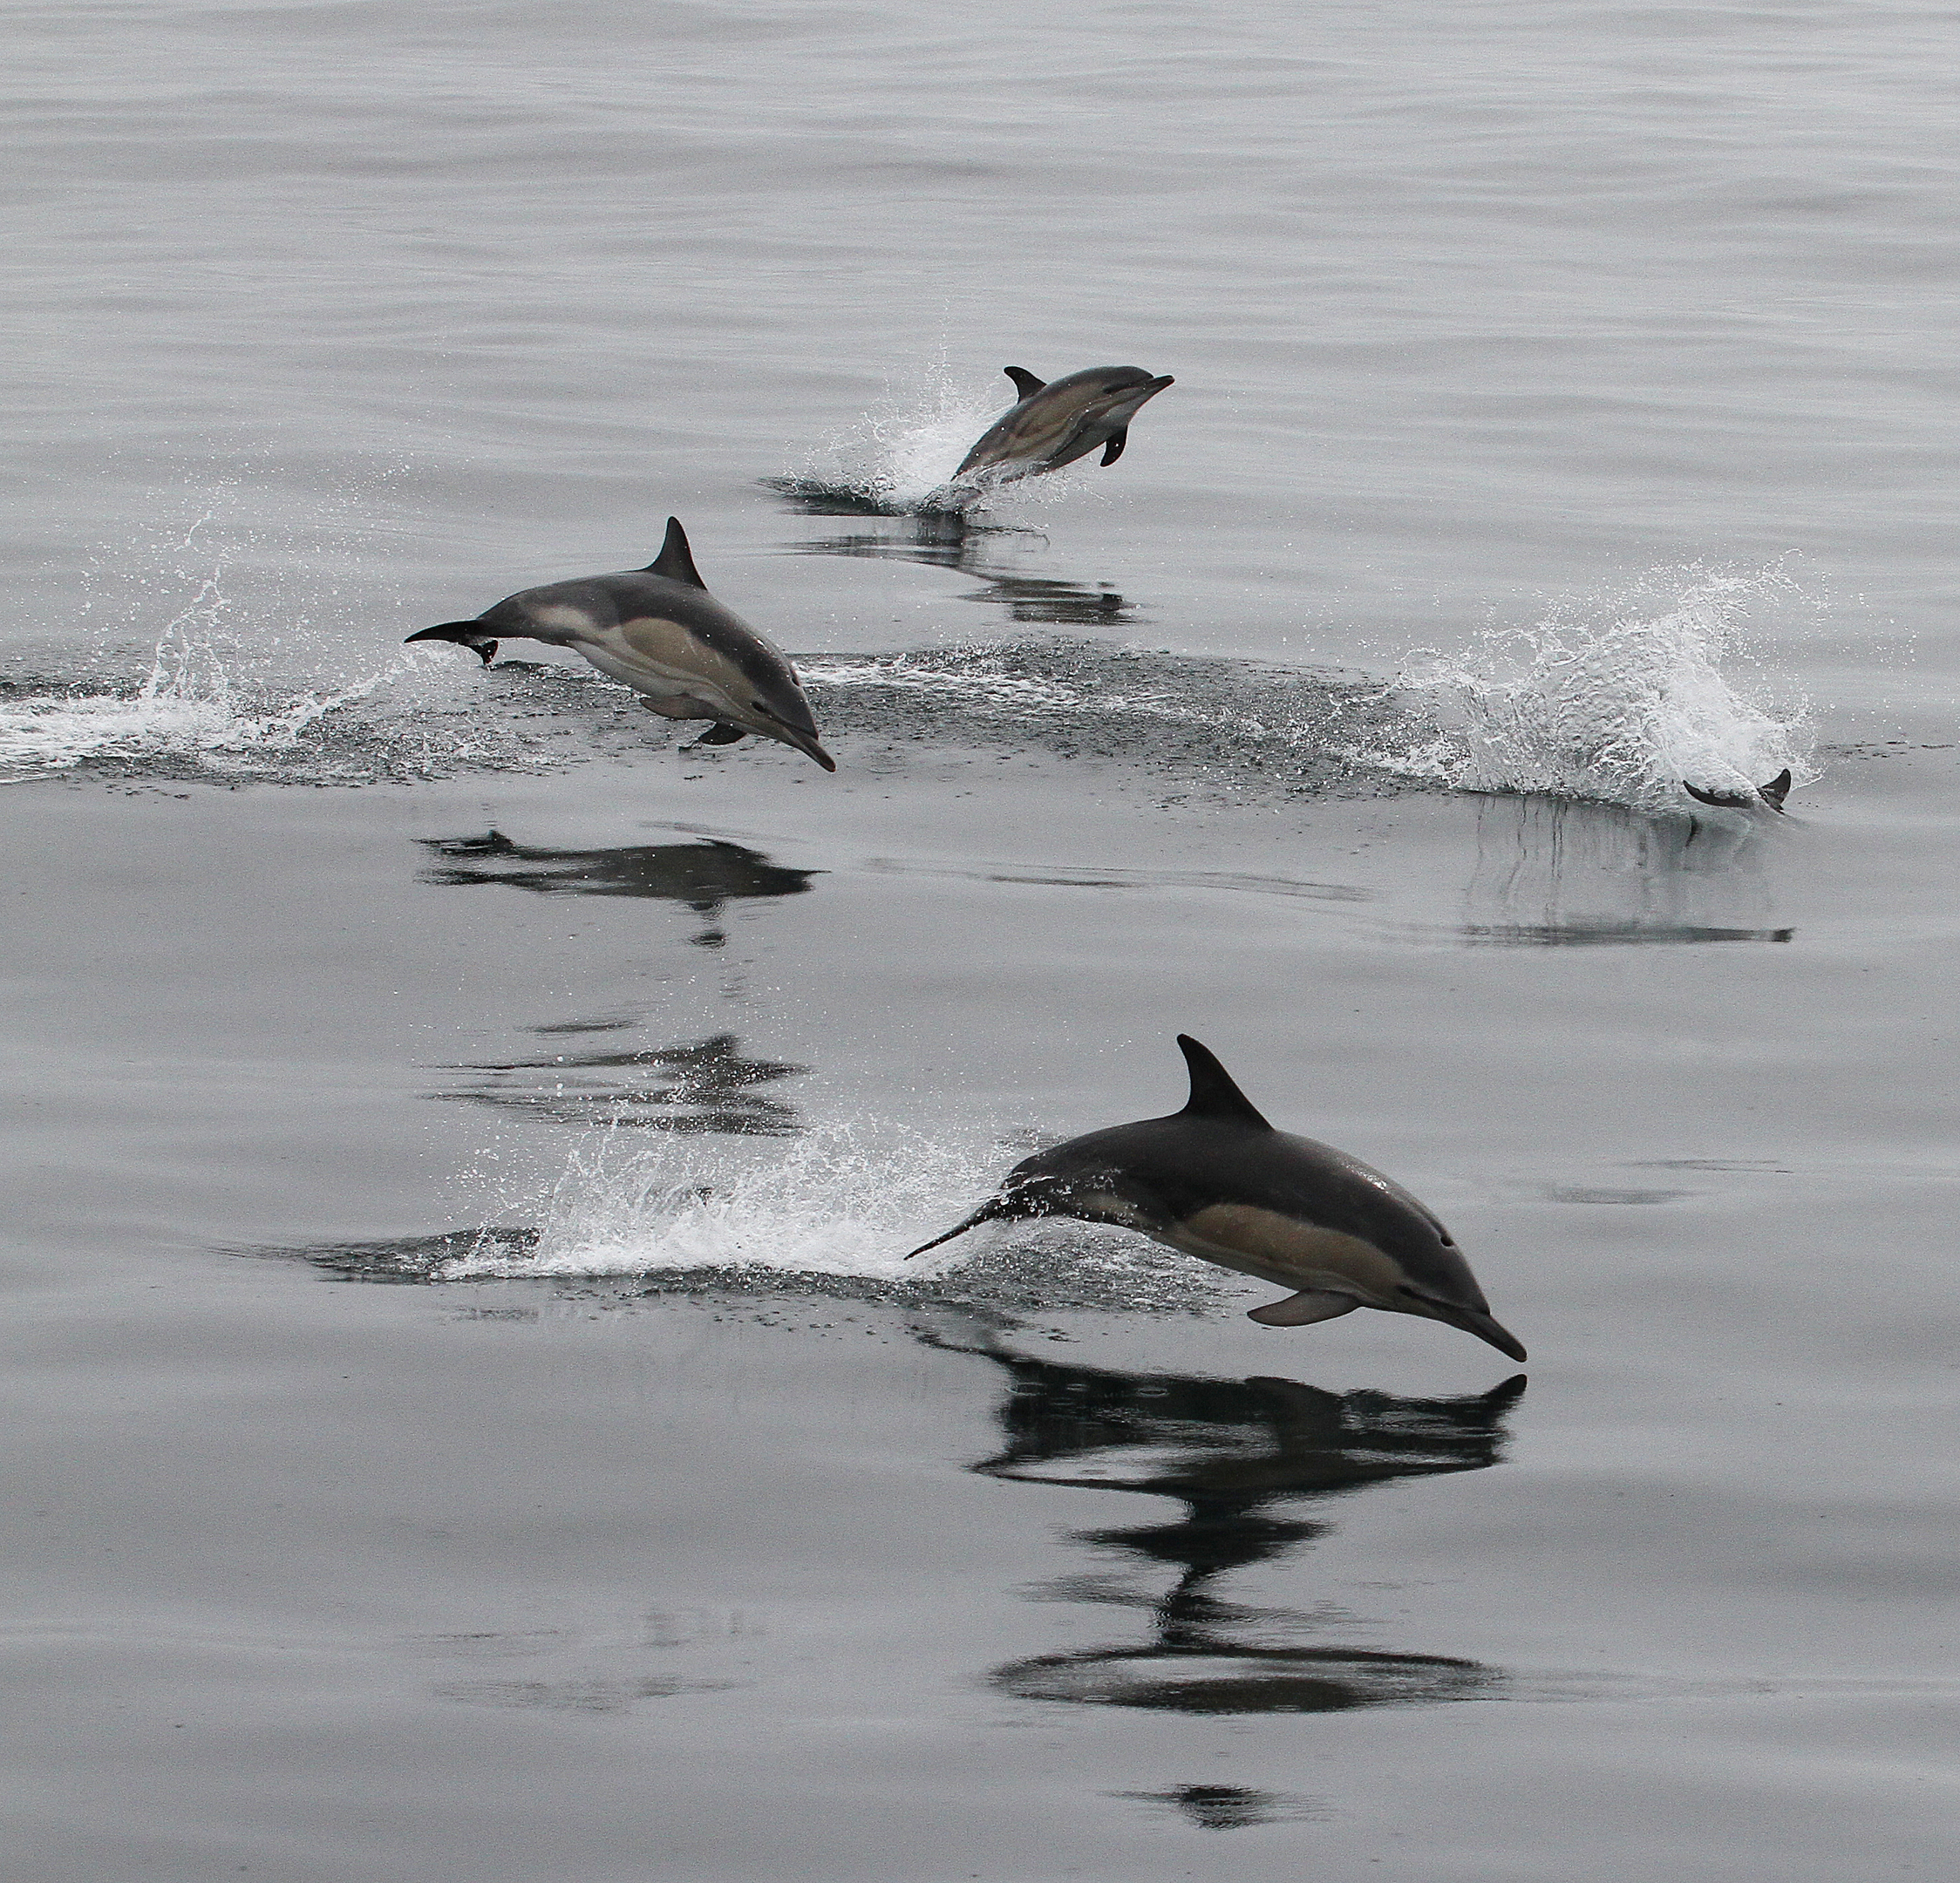 Fancy some spectacular whale and dolphin spotting? Head to the coast this weekend